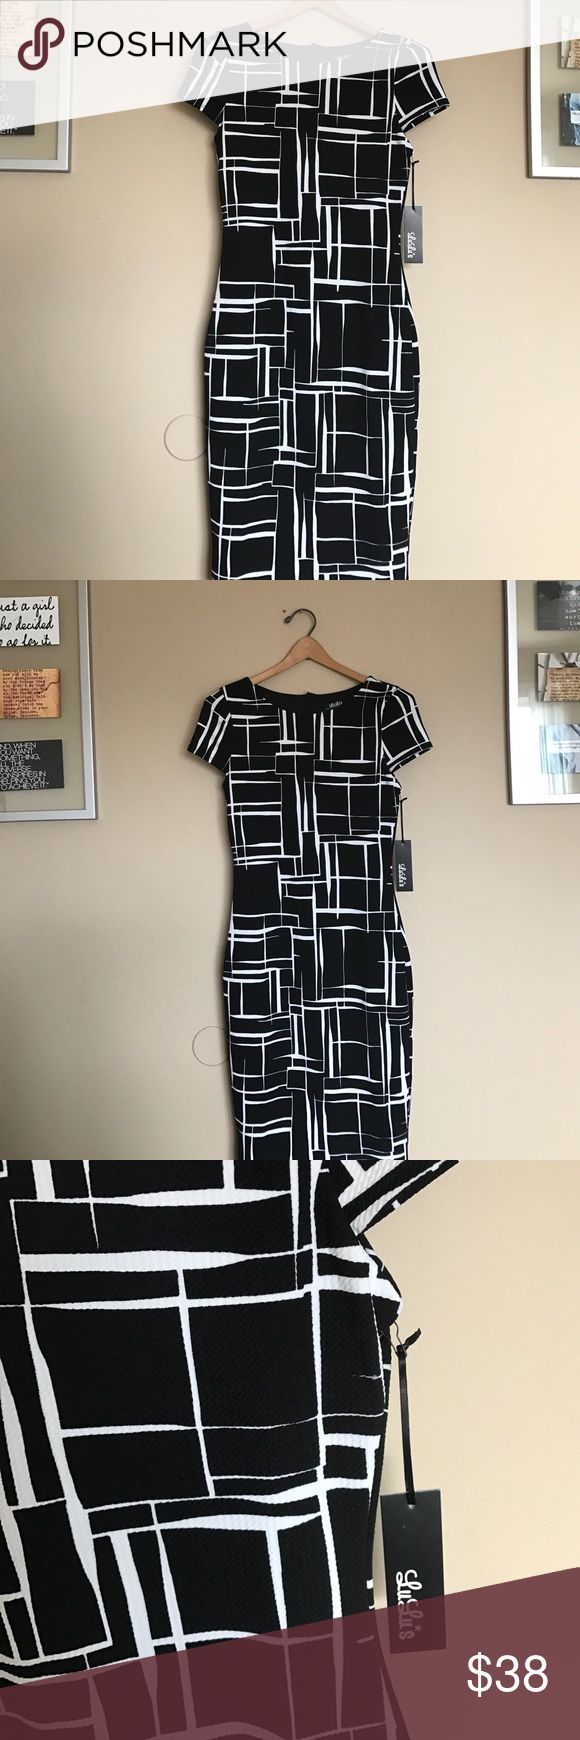 LuLu curated black and white bodycon print dress LuLu curated black and white bodycon print dress. Brand-new with tags. NWT. LULU coveted, curated, beautiful. This dress is perfect for Easter, church,bridal shower or wedding guest. Curve conscious. Sexy yet classy. I love reasonable offers, please feel free to ask any questions. 38 L X 15 armpit to armpit. Lulu Dresses